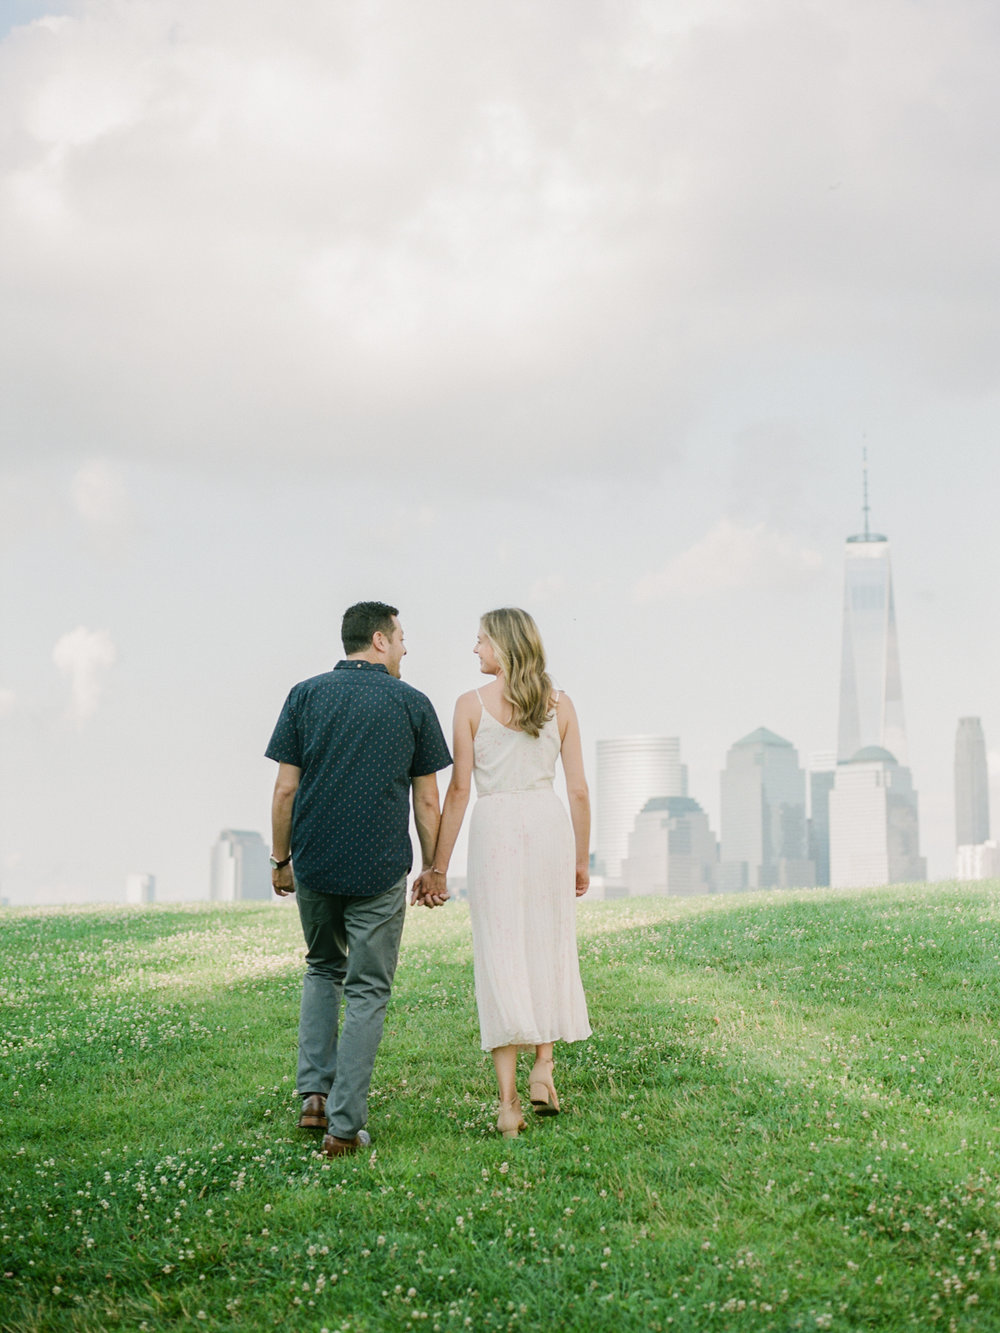 NYC-skyline-engagement-session-by-Tanya Isaeva-18.jpg